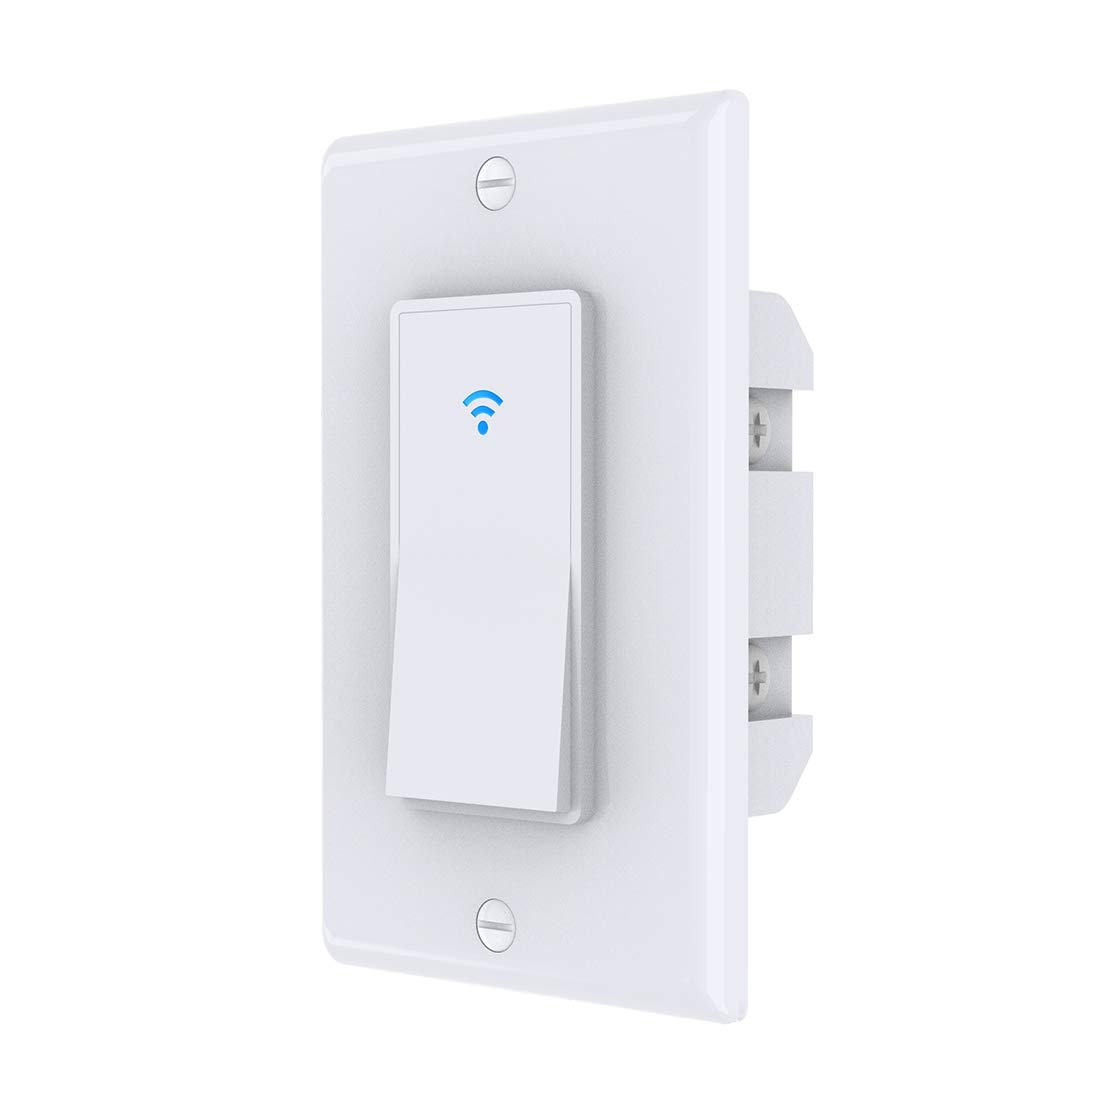 Zigbee Switch,Inle Smart Light Switch,with Alexa/Google Assistant and IFTTT,Remote Control and Timer,Requires zigbee Hub,Neutral Wire Required,10A 100-240V(White)